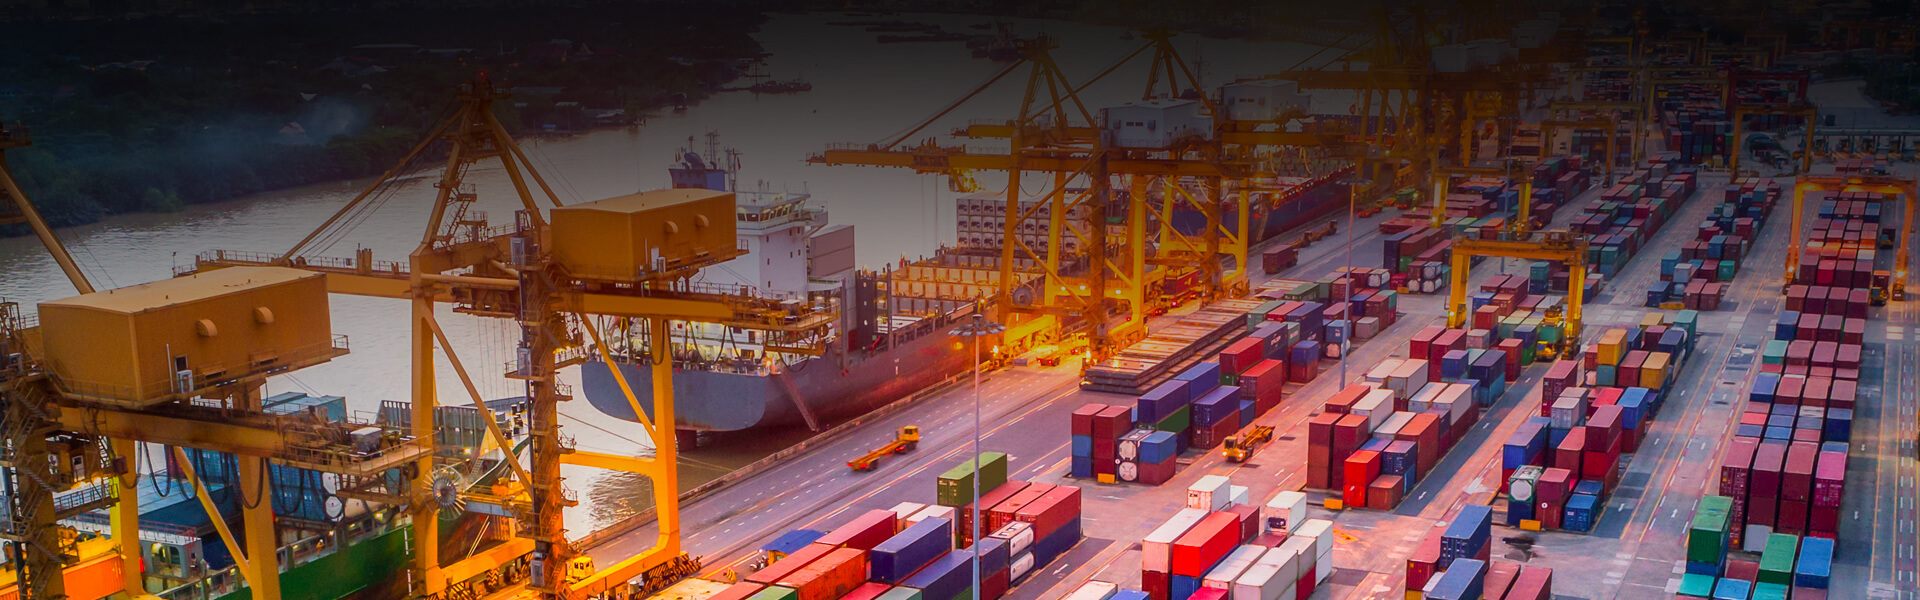 Re-strategizing Procurement of Supply Chain Management